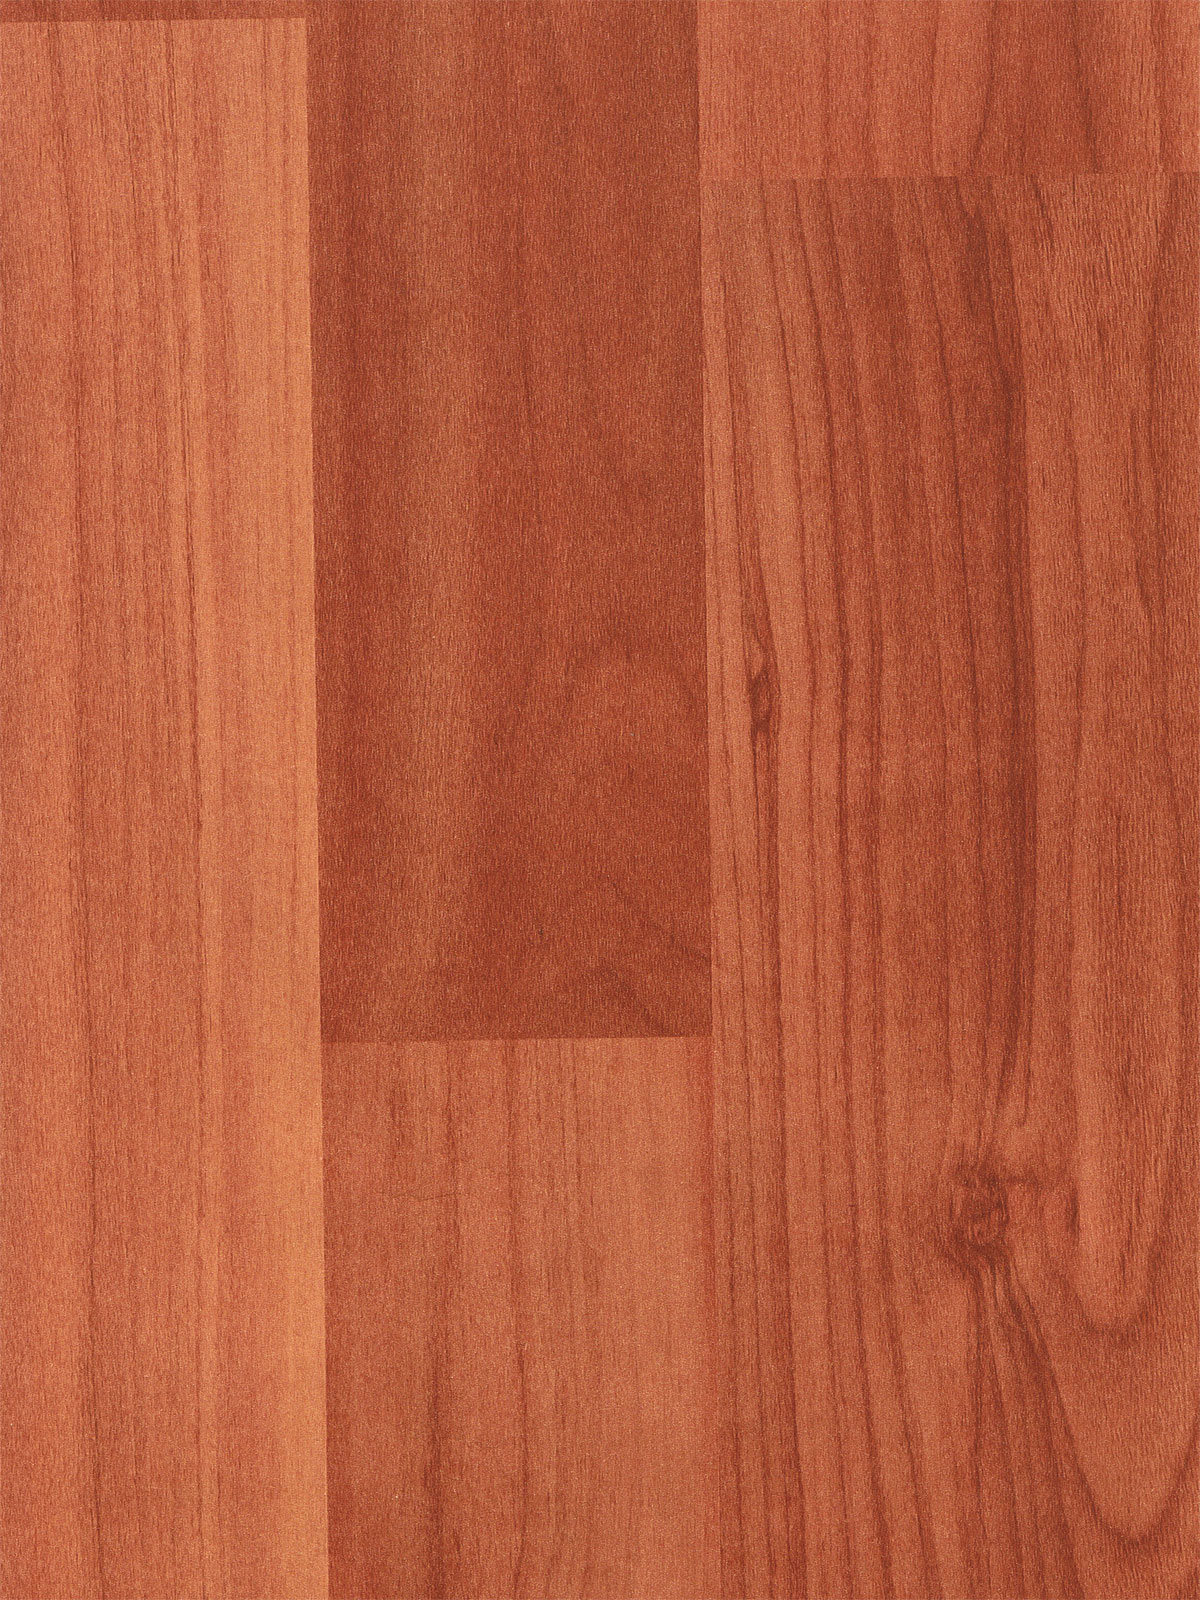 Colors of laminate flooring mixing laminate floor colors for Laminate flooring colors